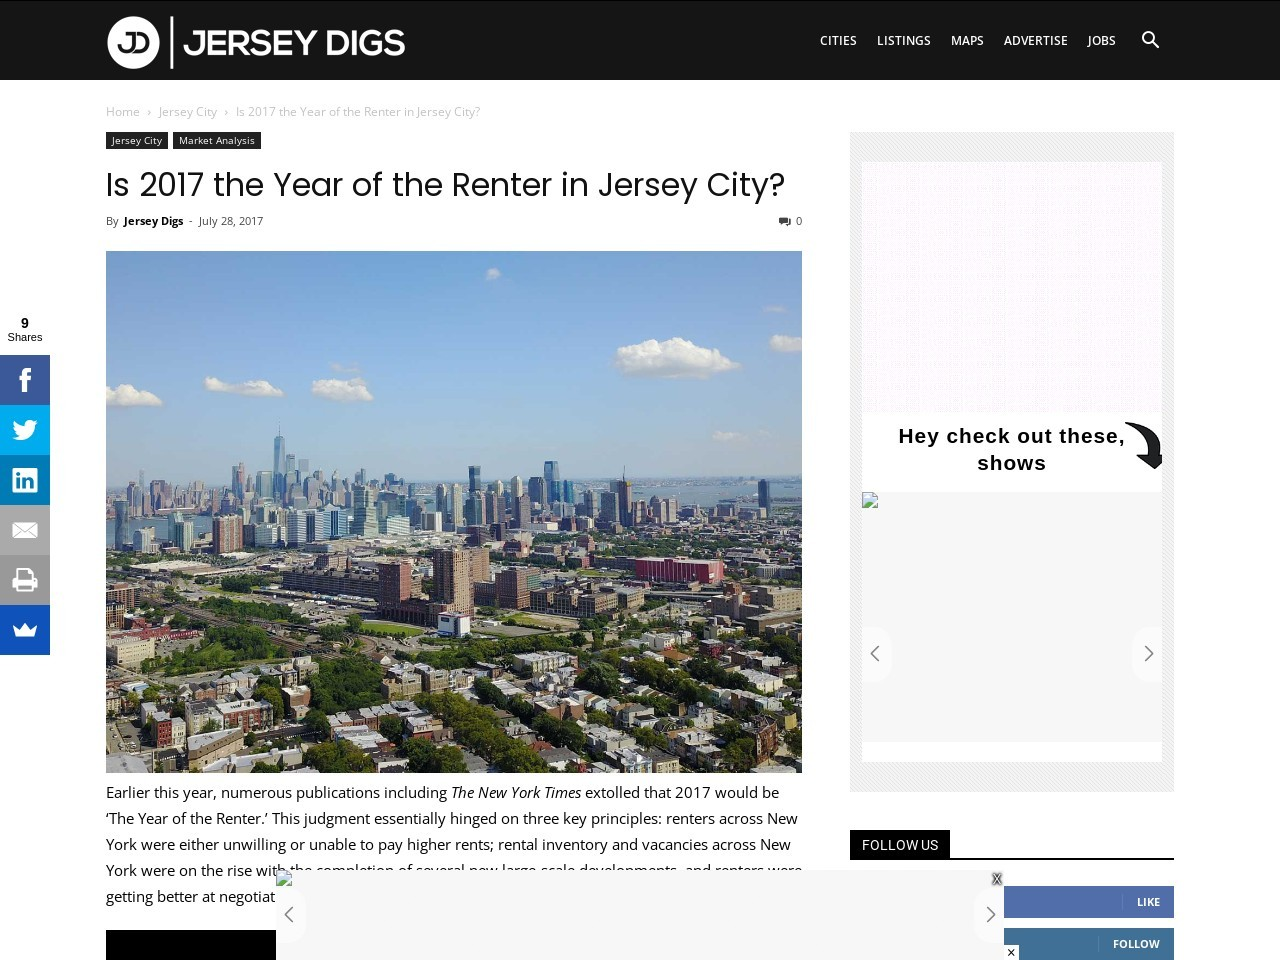 Is 2017 the Year of the Renter in Jersey City?